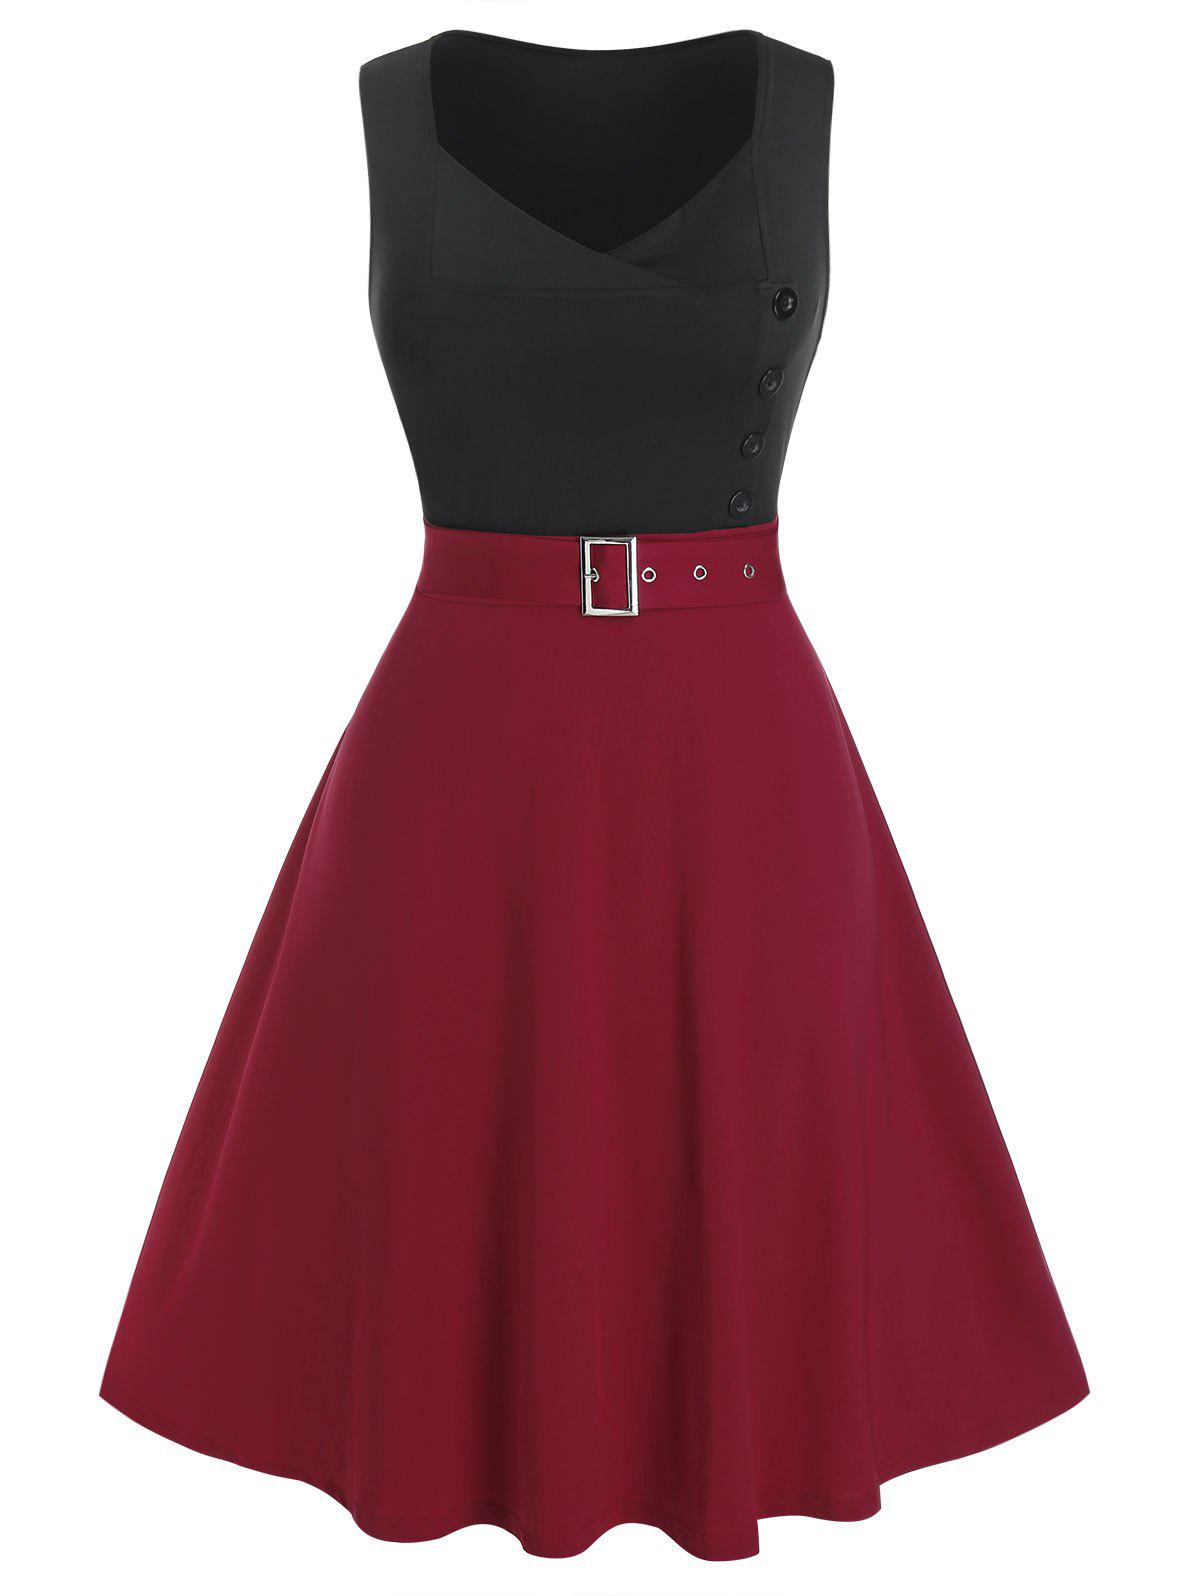 Plus Size Two Tone Bicolor Eyelet Buckle A Line Dress - RED WINE 2X